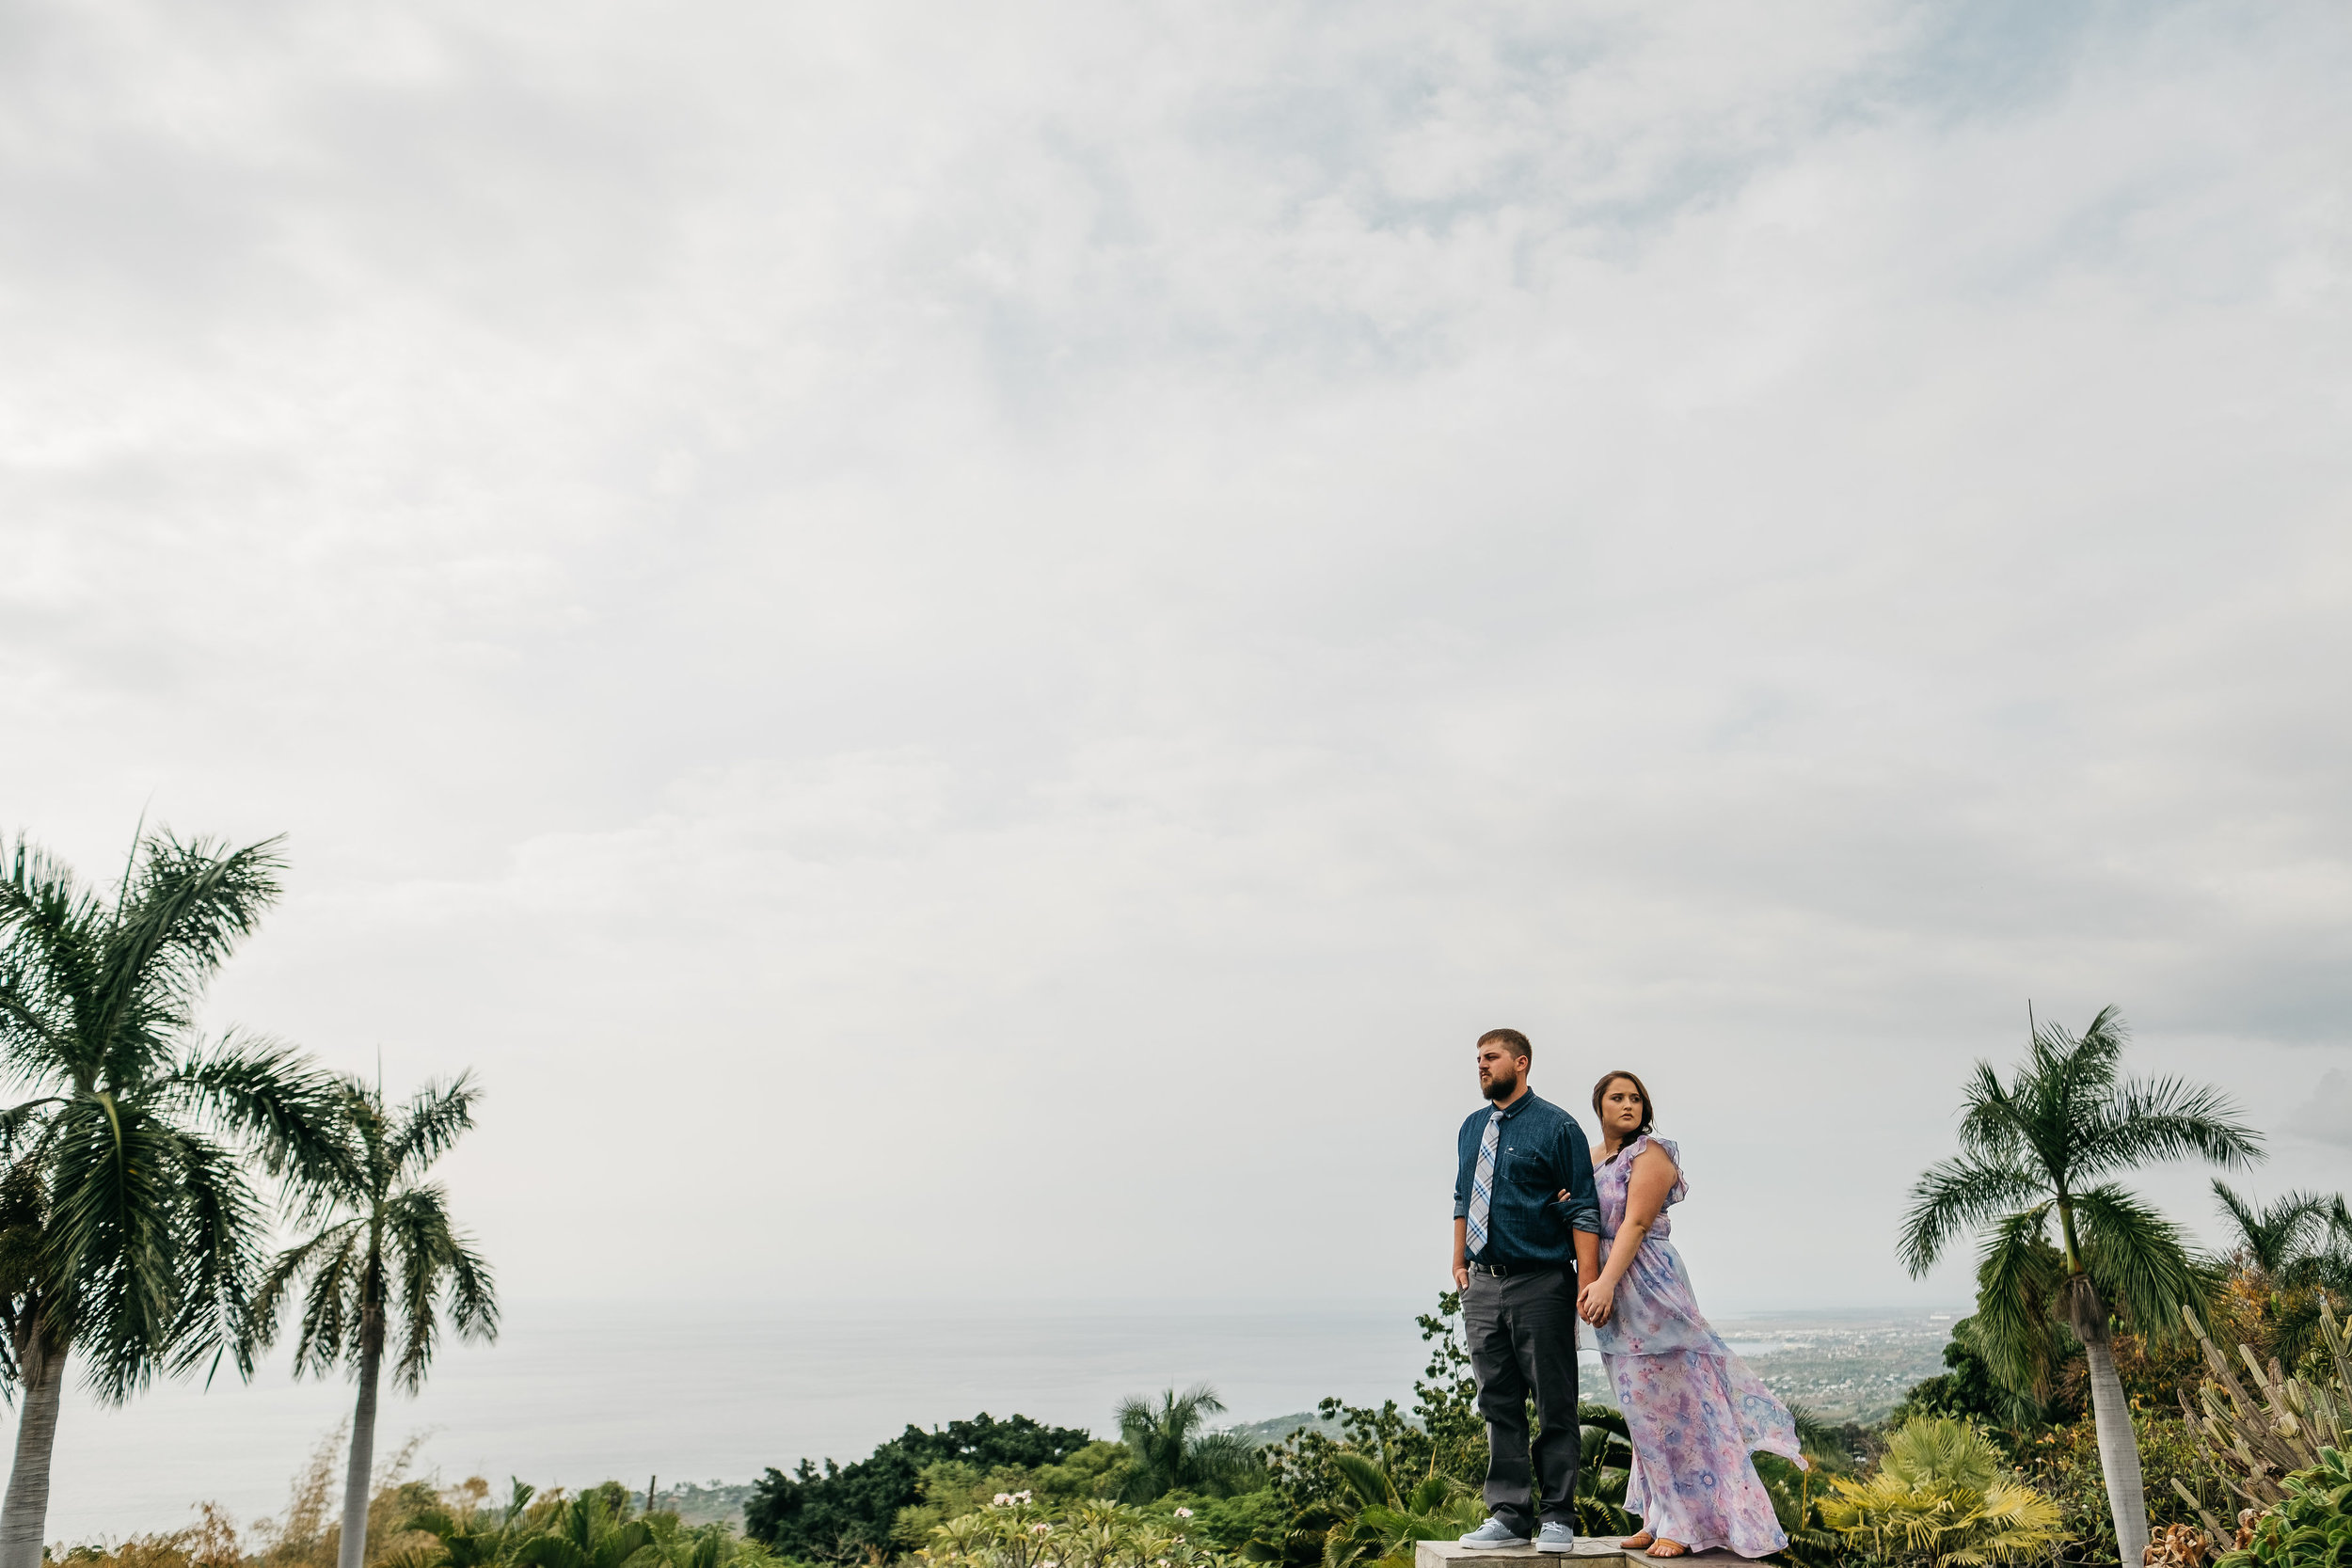 Bride and groom pose for a wedding picture overlooking the beautiful island of Hawaii.